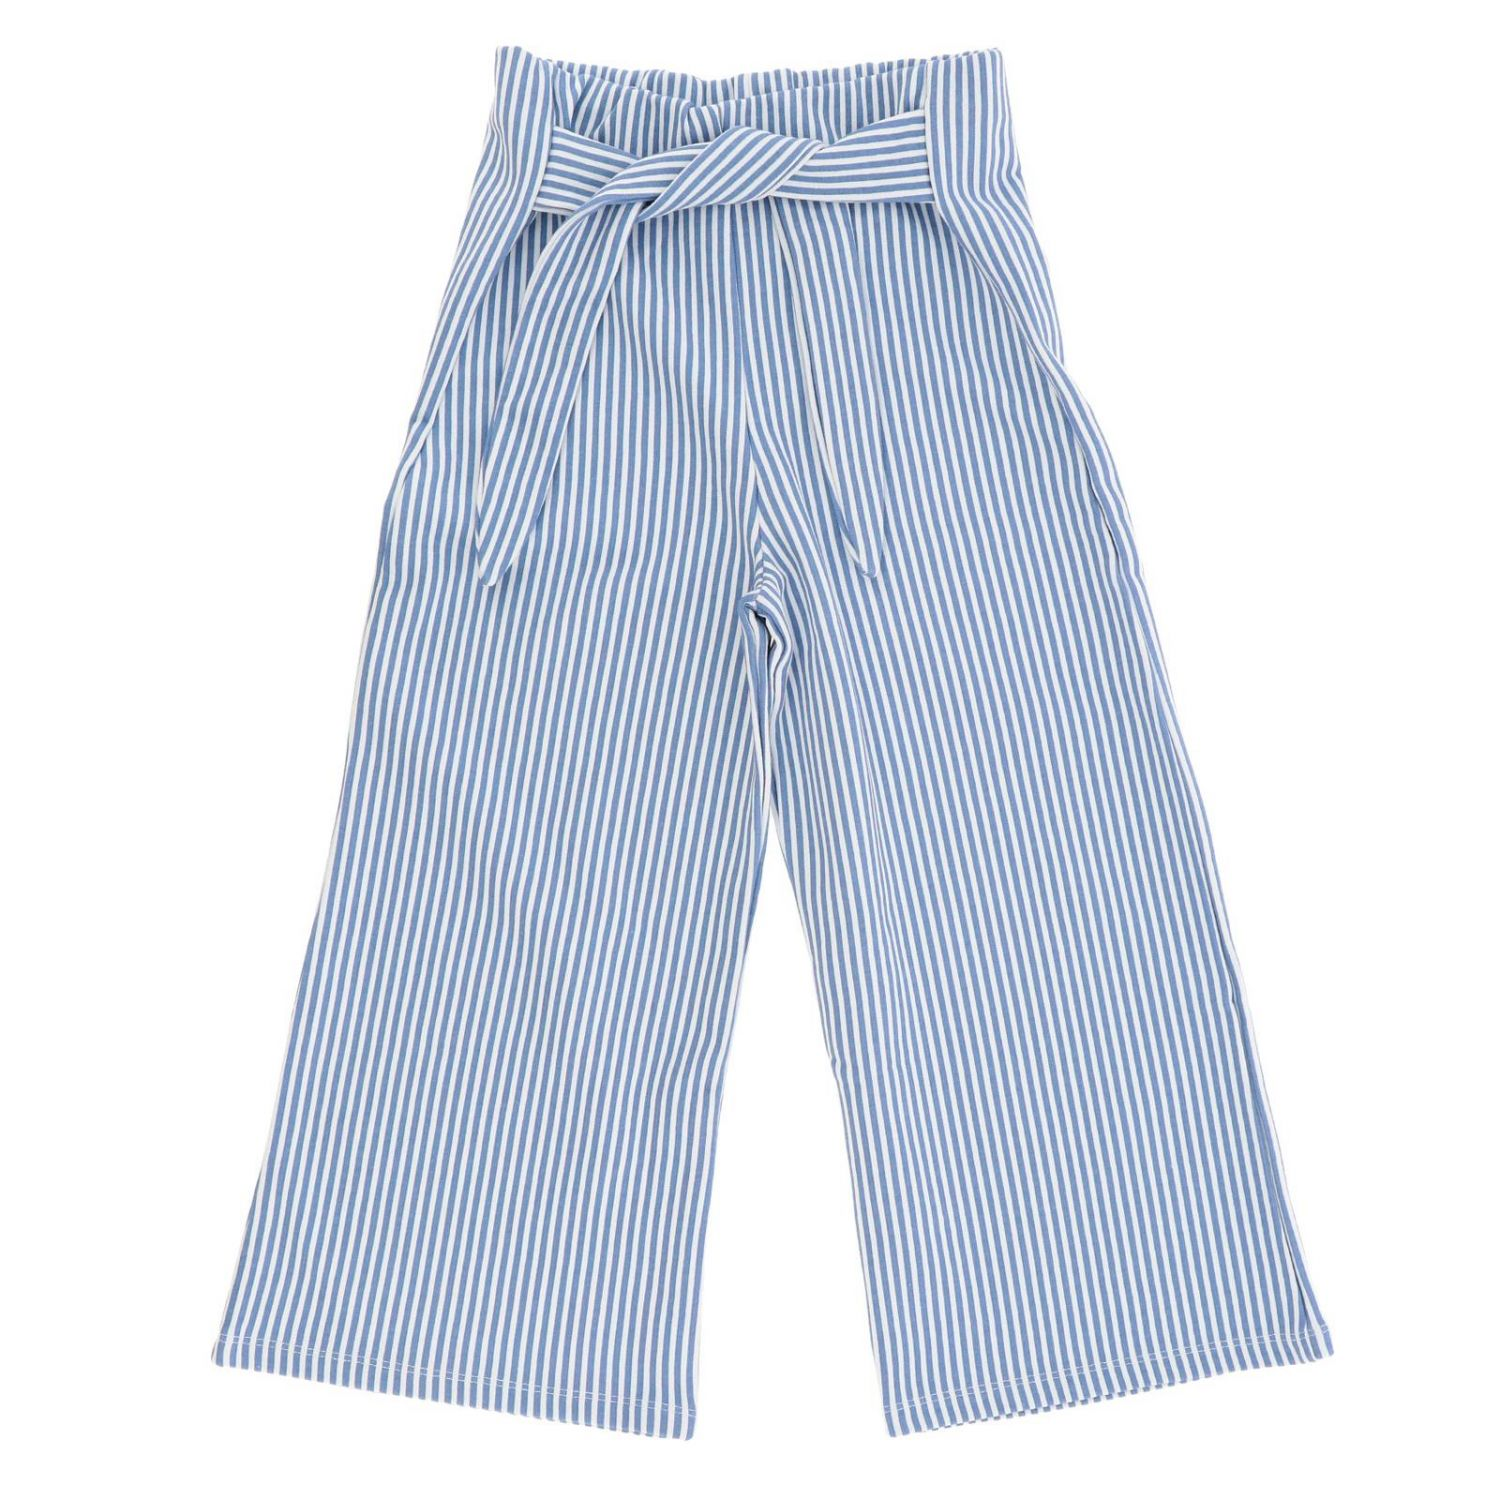 Trousers kids Manila Grace sky blue 1